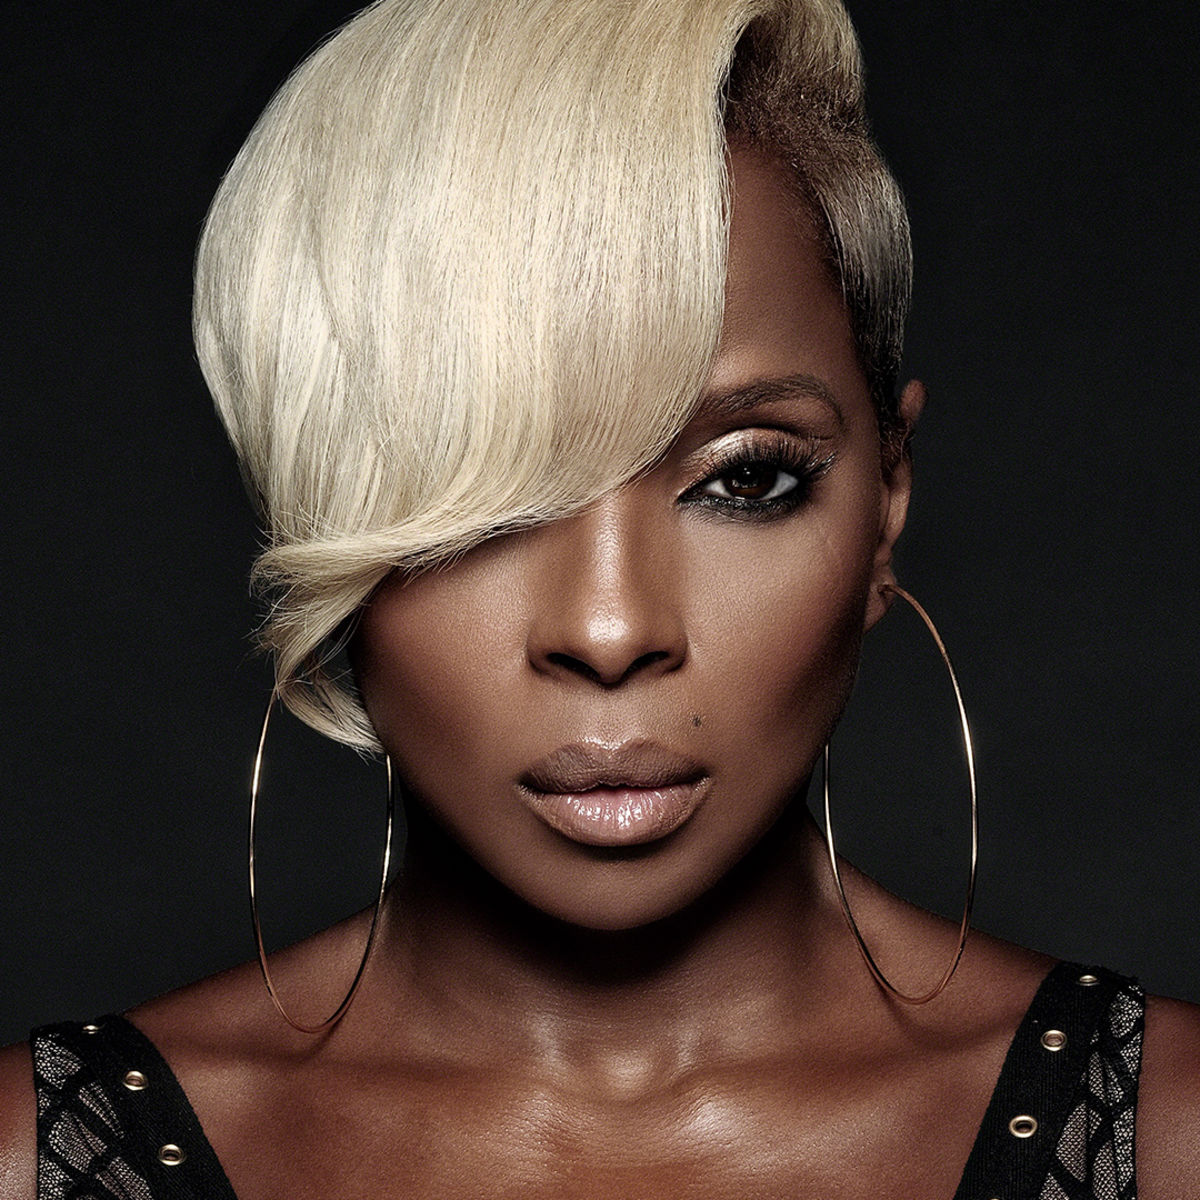 Photo of Grammy Award winner Mary J. Blige who is part of the Grand Opening lineup for the newest Entertainment and Sports Arena in DC.